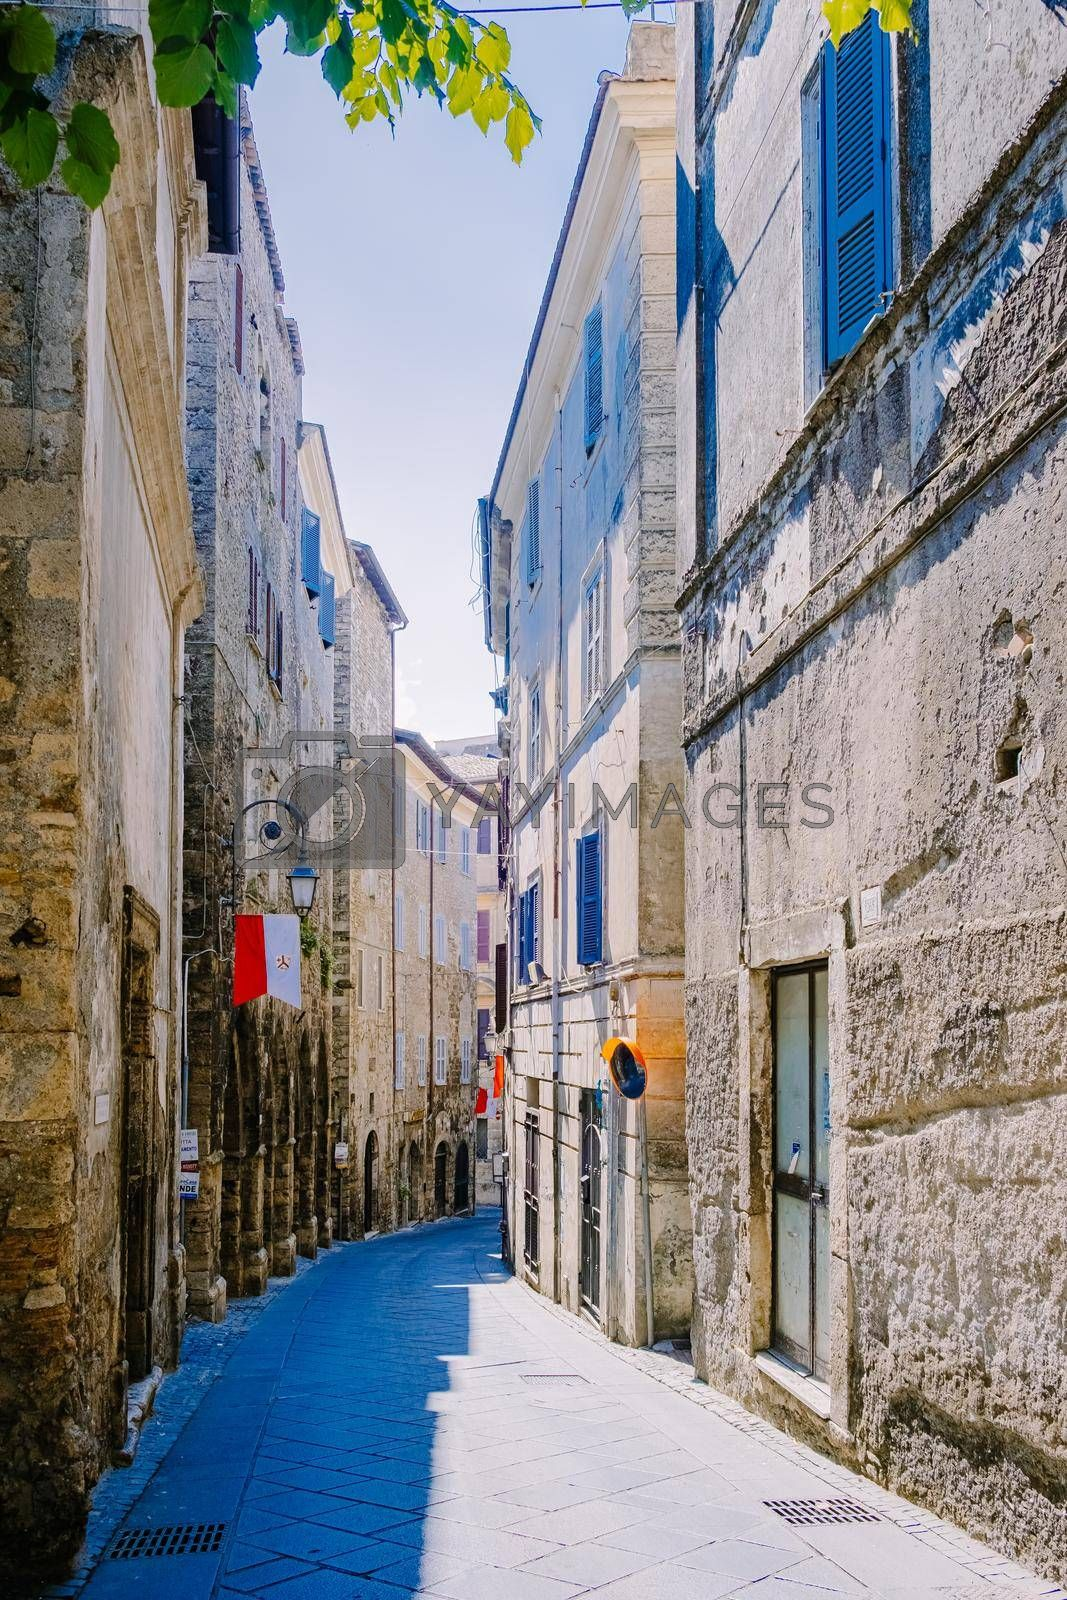 Overview of Fiuggi in Italy, Scenic sight in Fiuggi, Province of Frosinone, Lazio, central Italy. Europe, a couple walking on the colorful streets of Fiuggi. September 2020